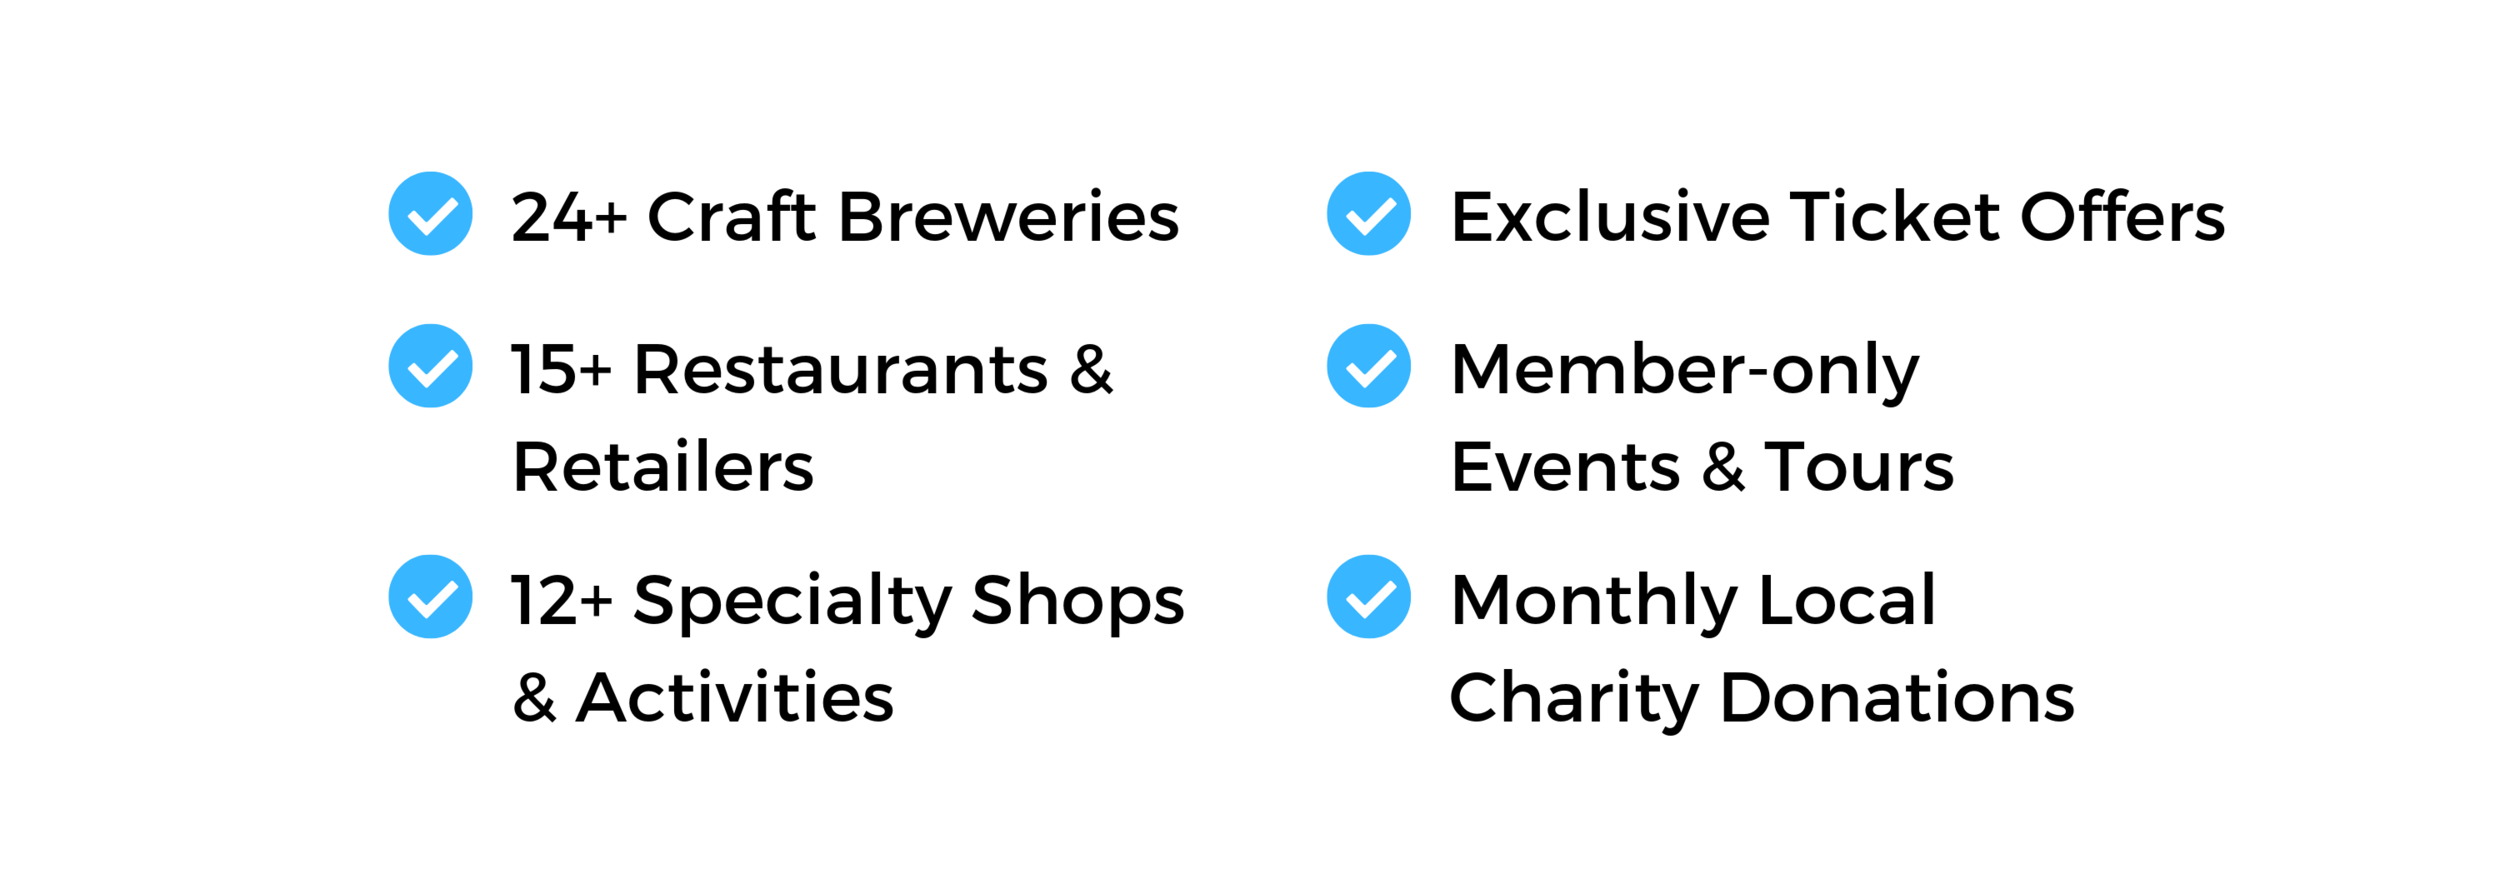 Beer of the month club benefits.png